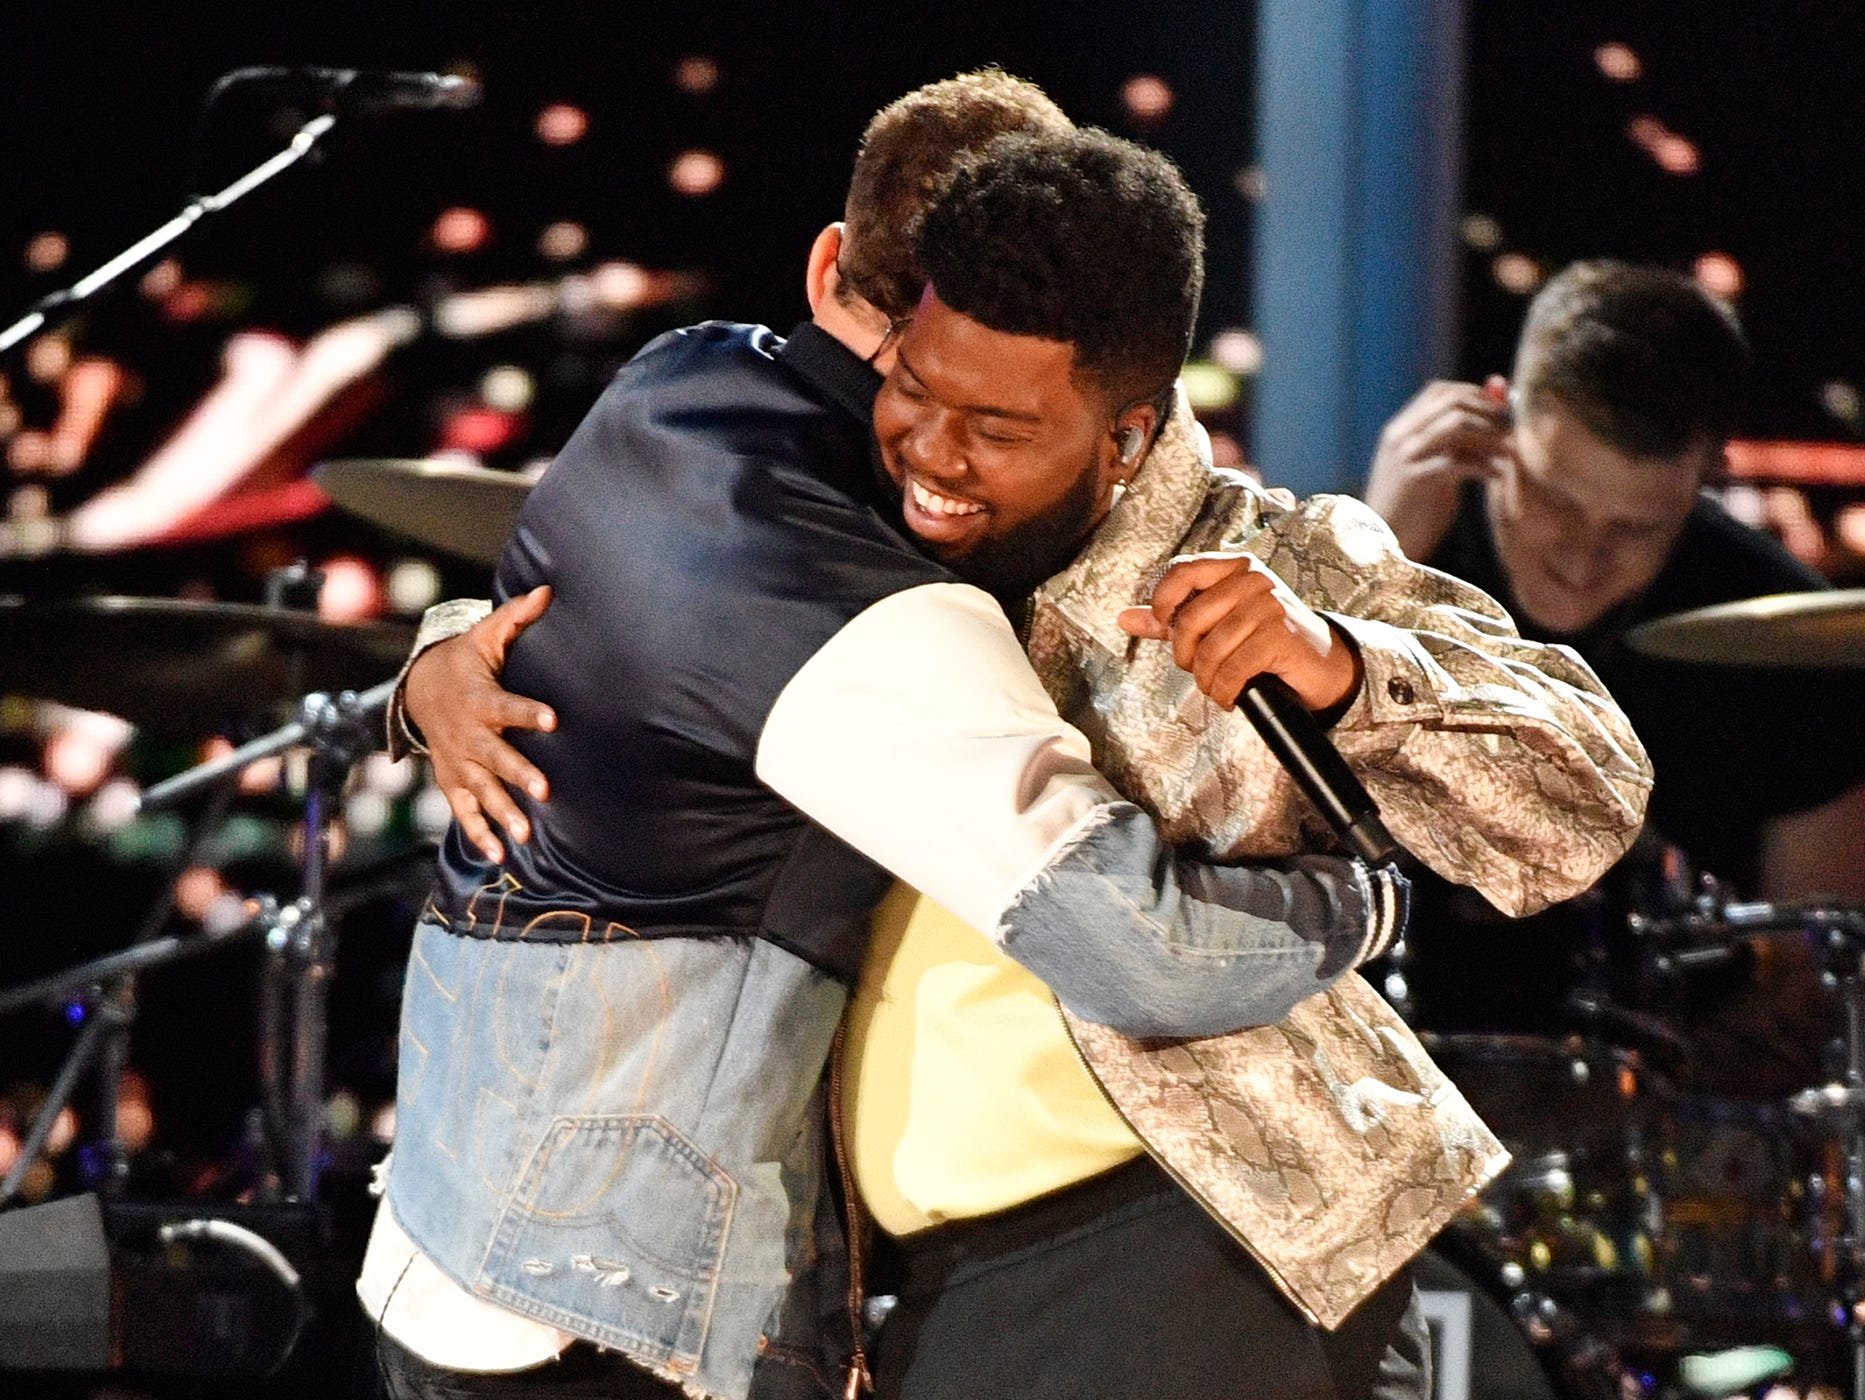 Kane Brown, left, and Khalid, embrace after performing during the 54TH Academy of Country Music Awards Sunday, April 7, 2019, in Las Vegas, Nev.